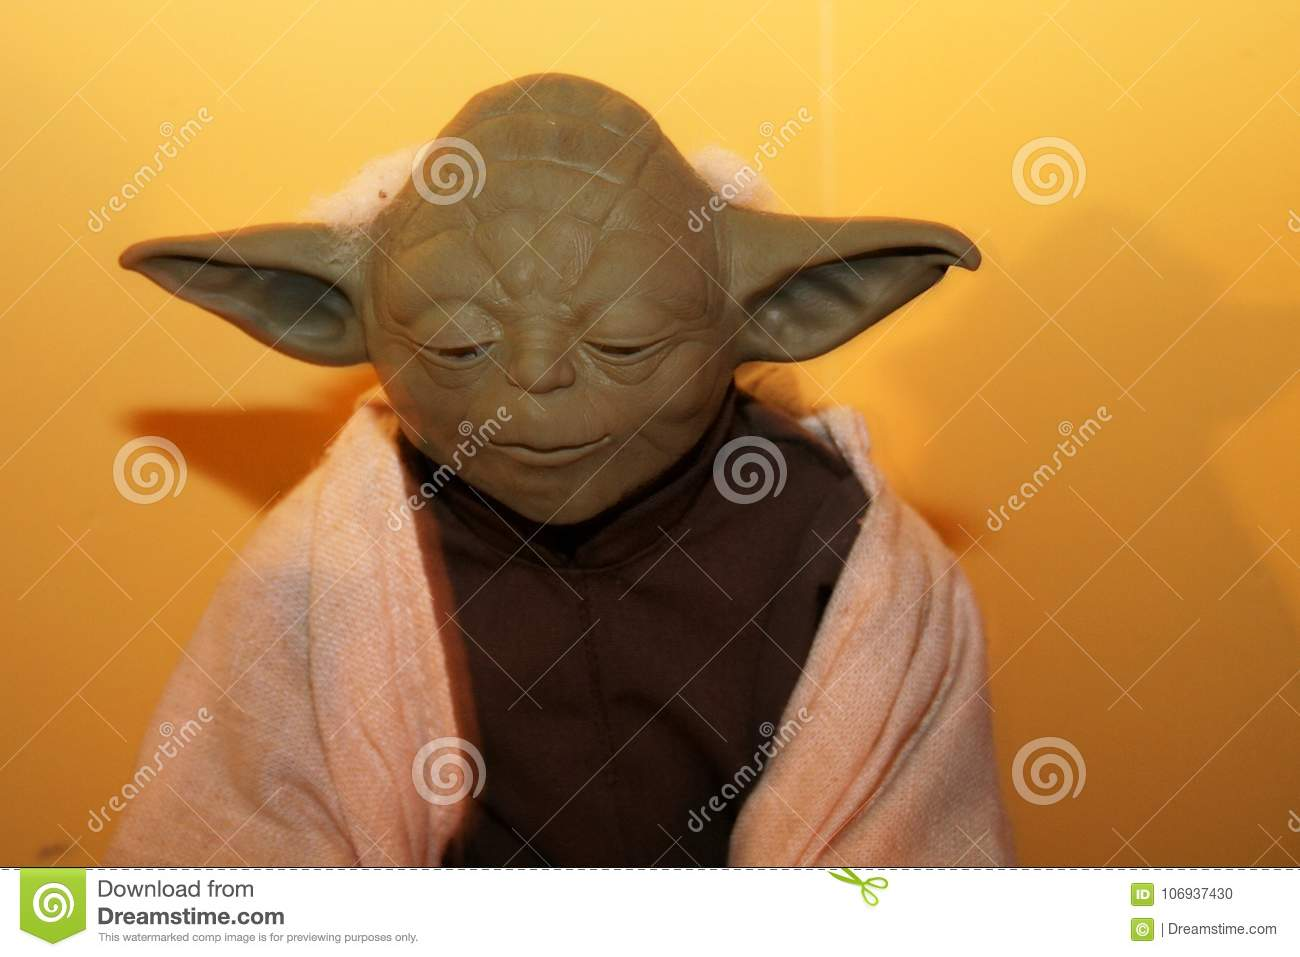 Yoda From Star Wars Character Editorial Image Image Of Concerned